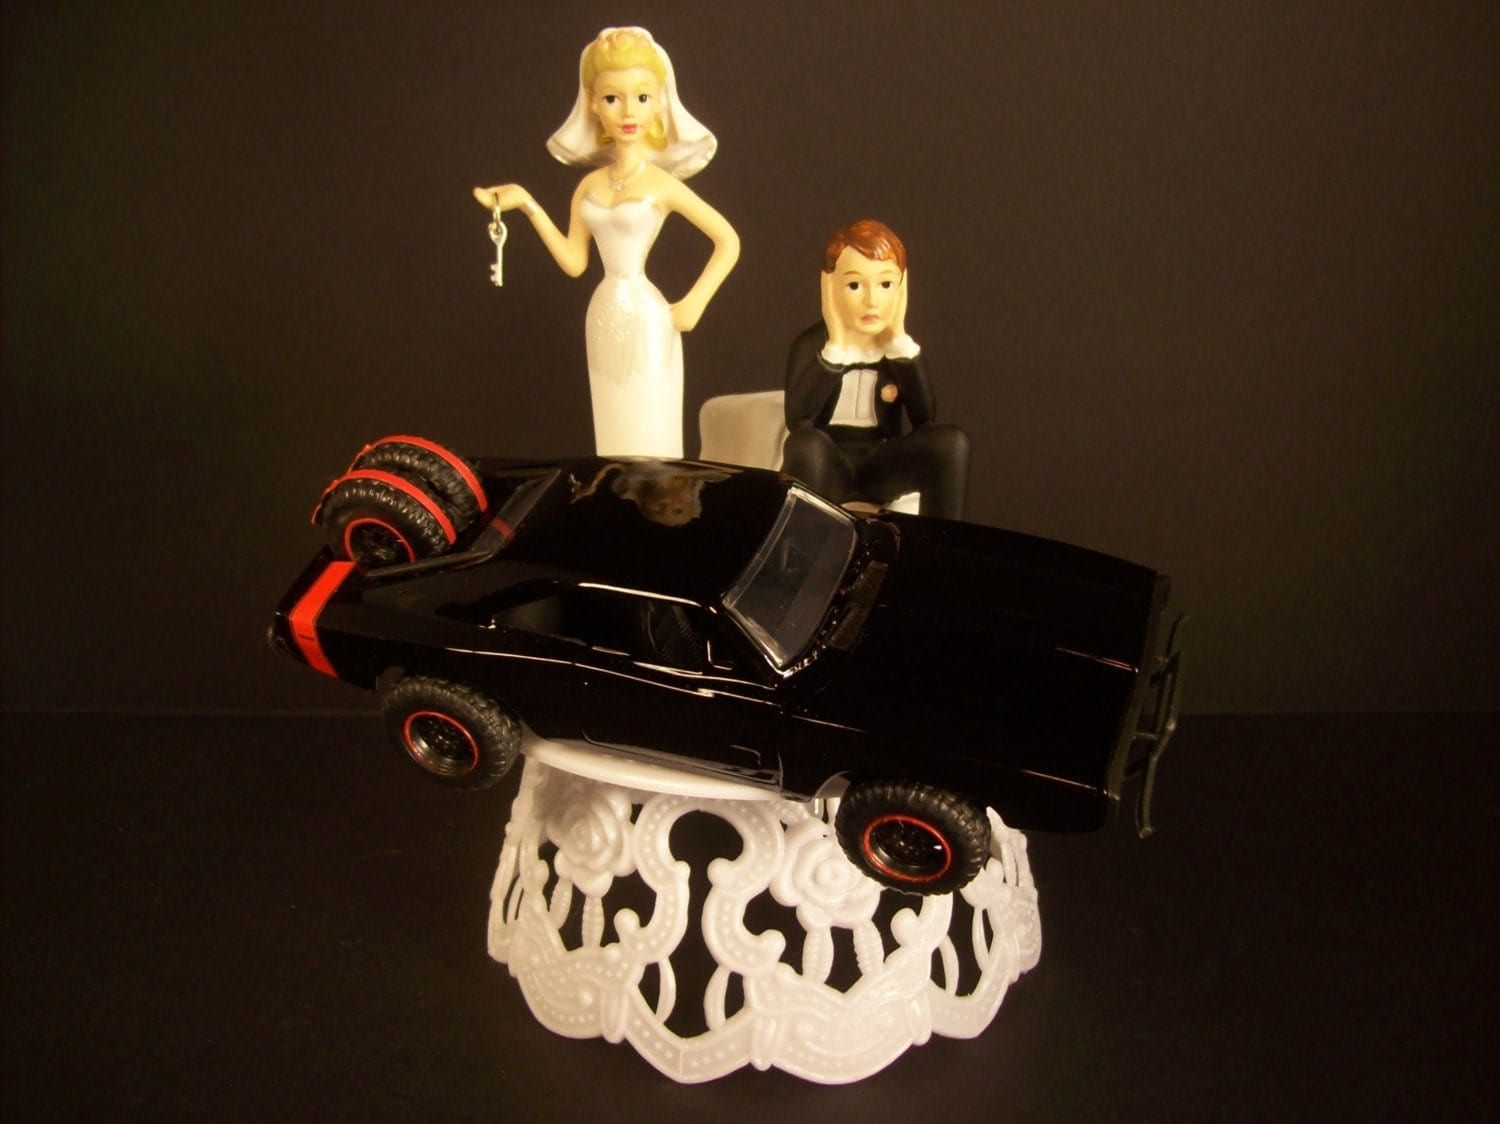 dodge truck wedding cake topper got the key wedding cake topper w black and 1970 13664